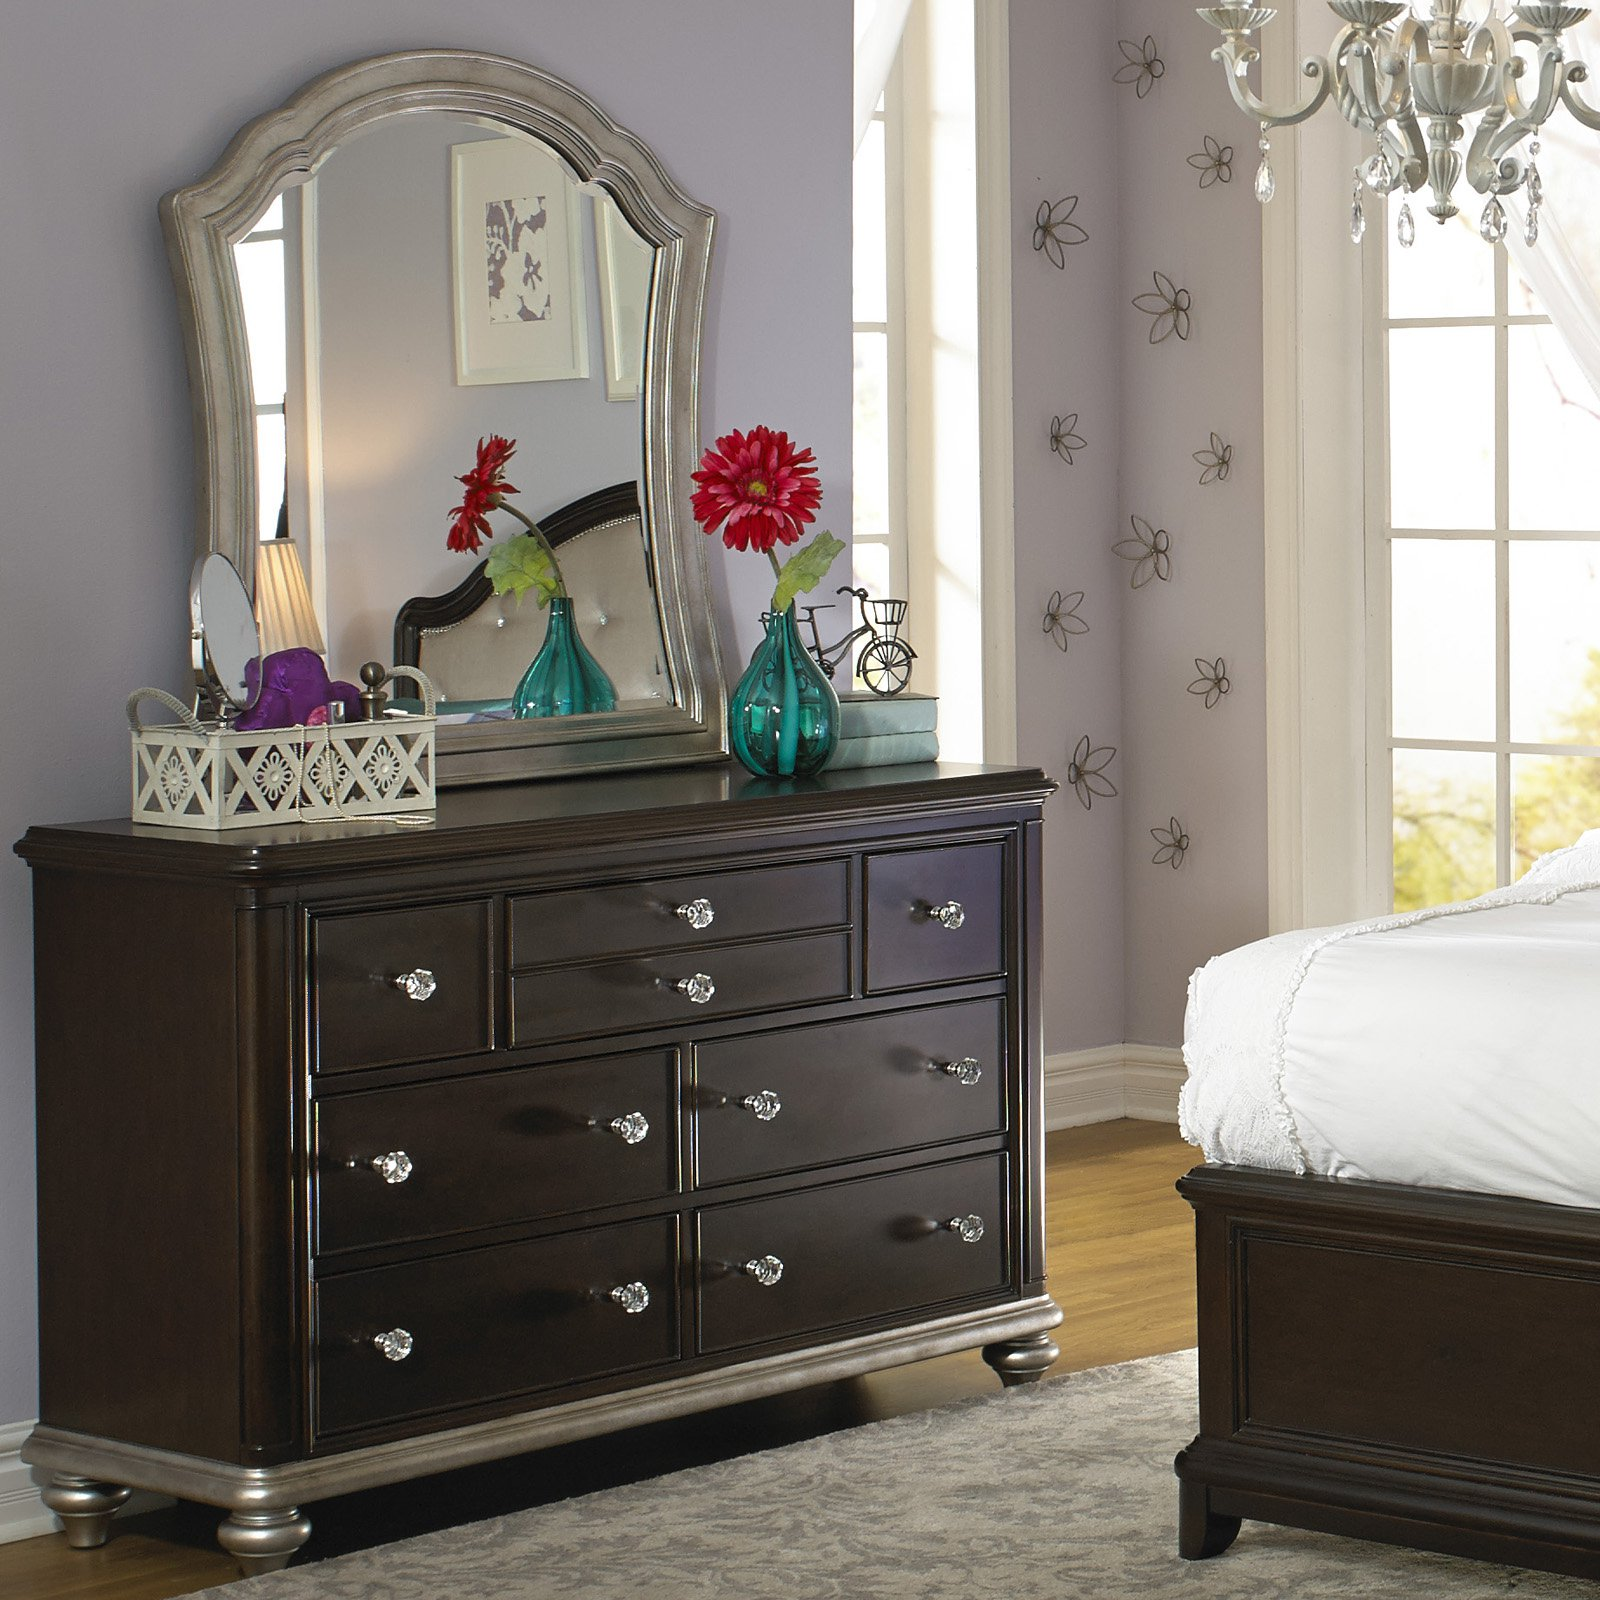 Girls Glam 7 Drawer Dresser - Dark Cherry